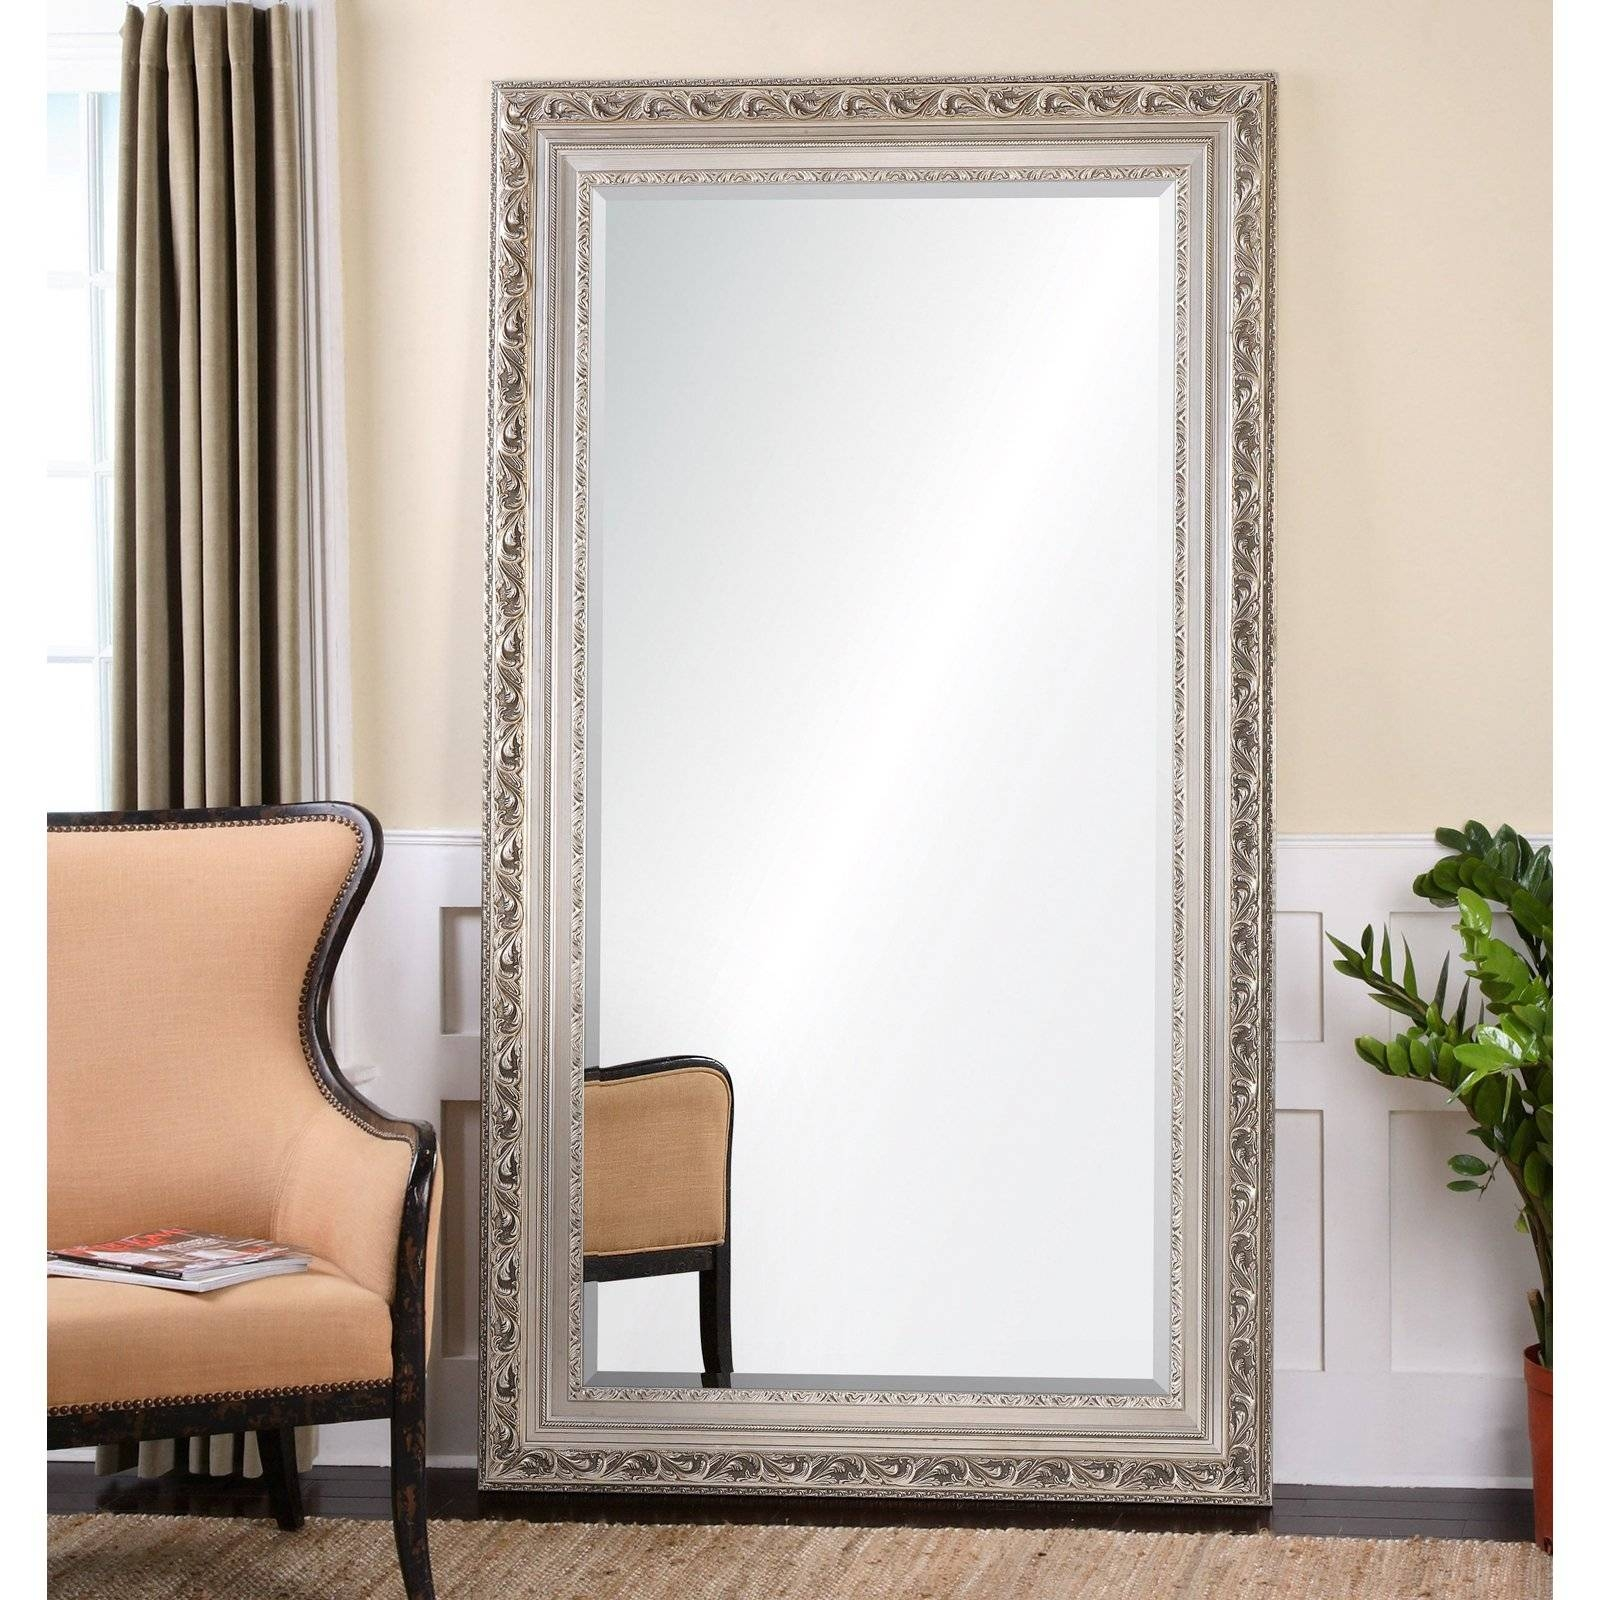 Big Floor Mirrors | Vanity Decoration Pertaining To Big Mirrors (View 13 of 15)